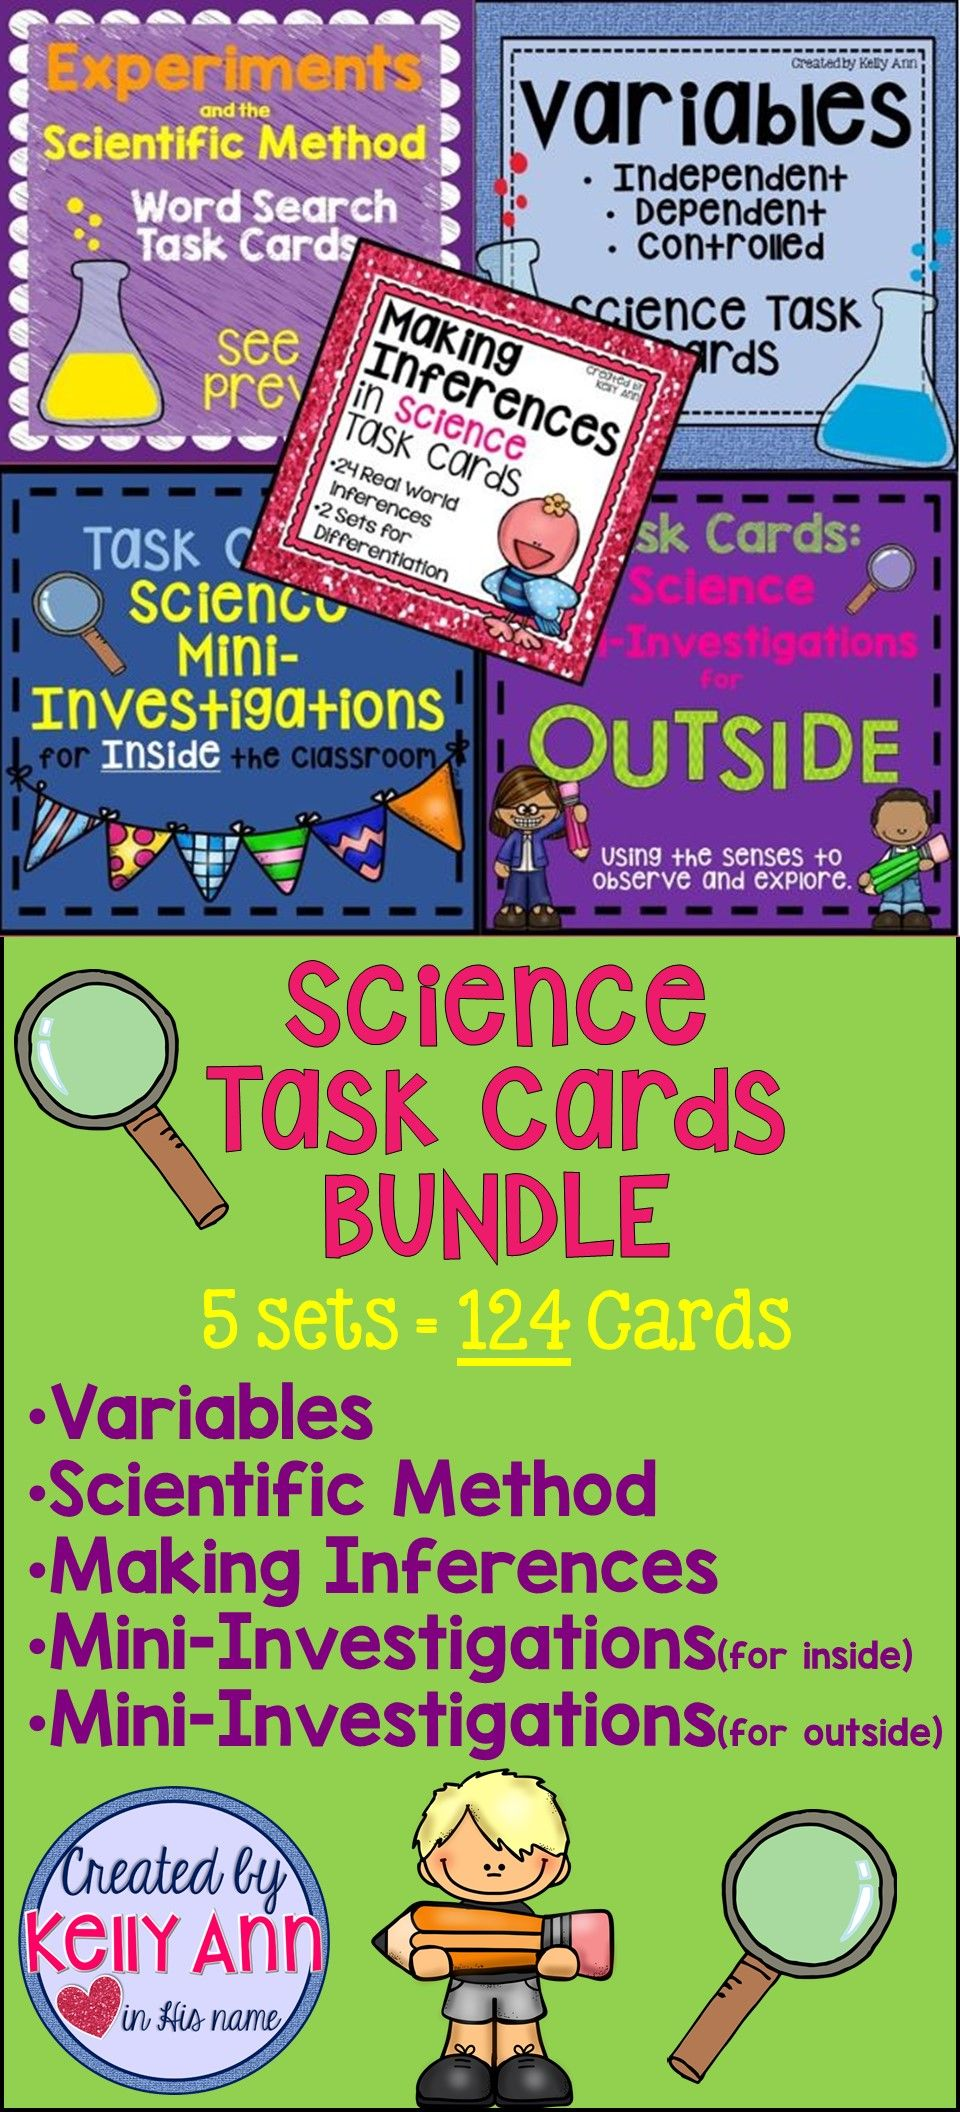 A logical grouping of SCIENCE TASK CARDS for a variety of